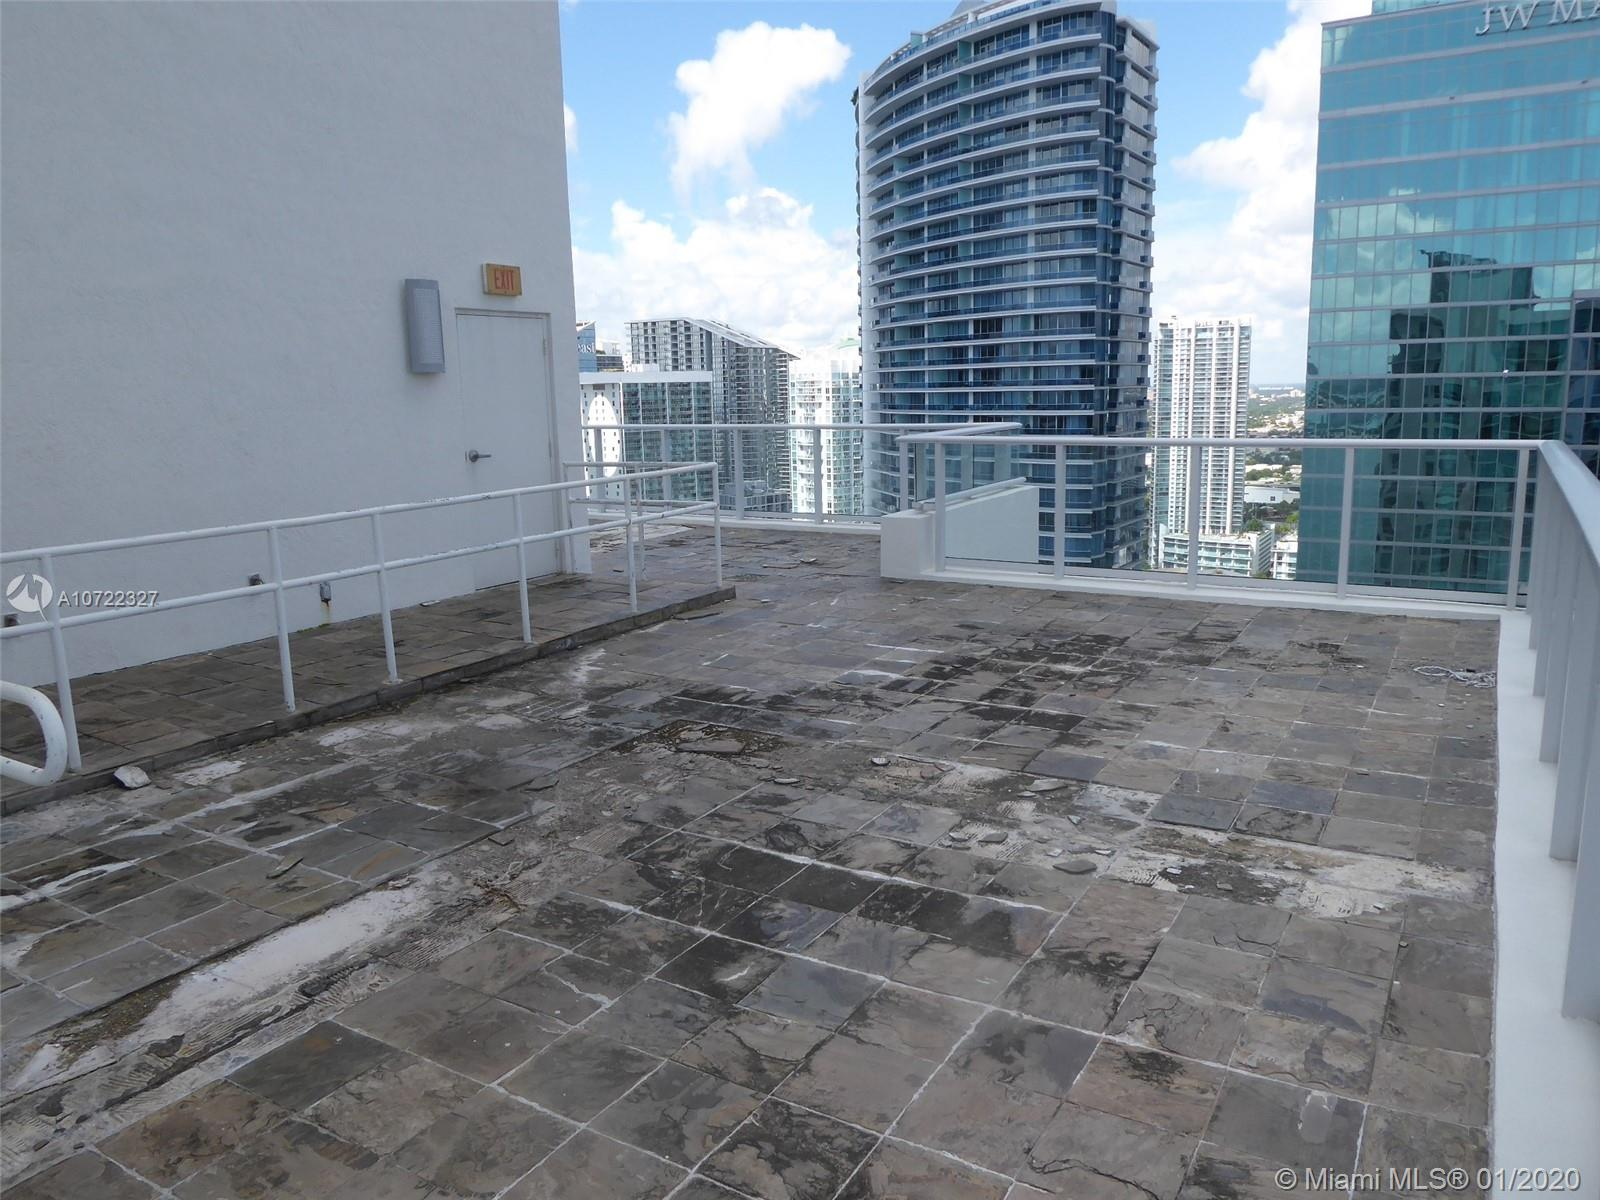 300 Biscayne blvd-PH 3802 miami-fl-33131-a10722327-Pic53